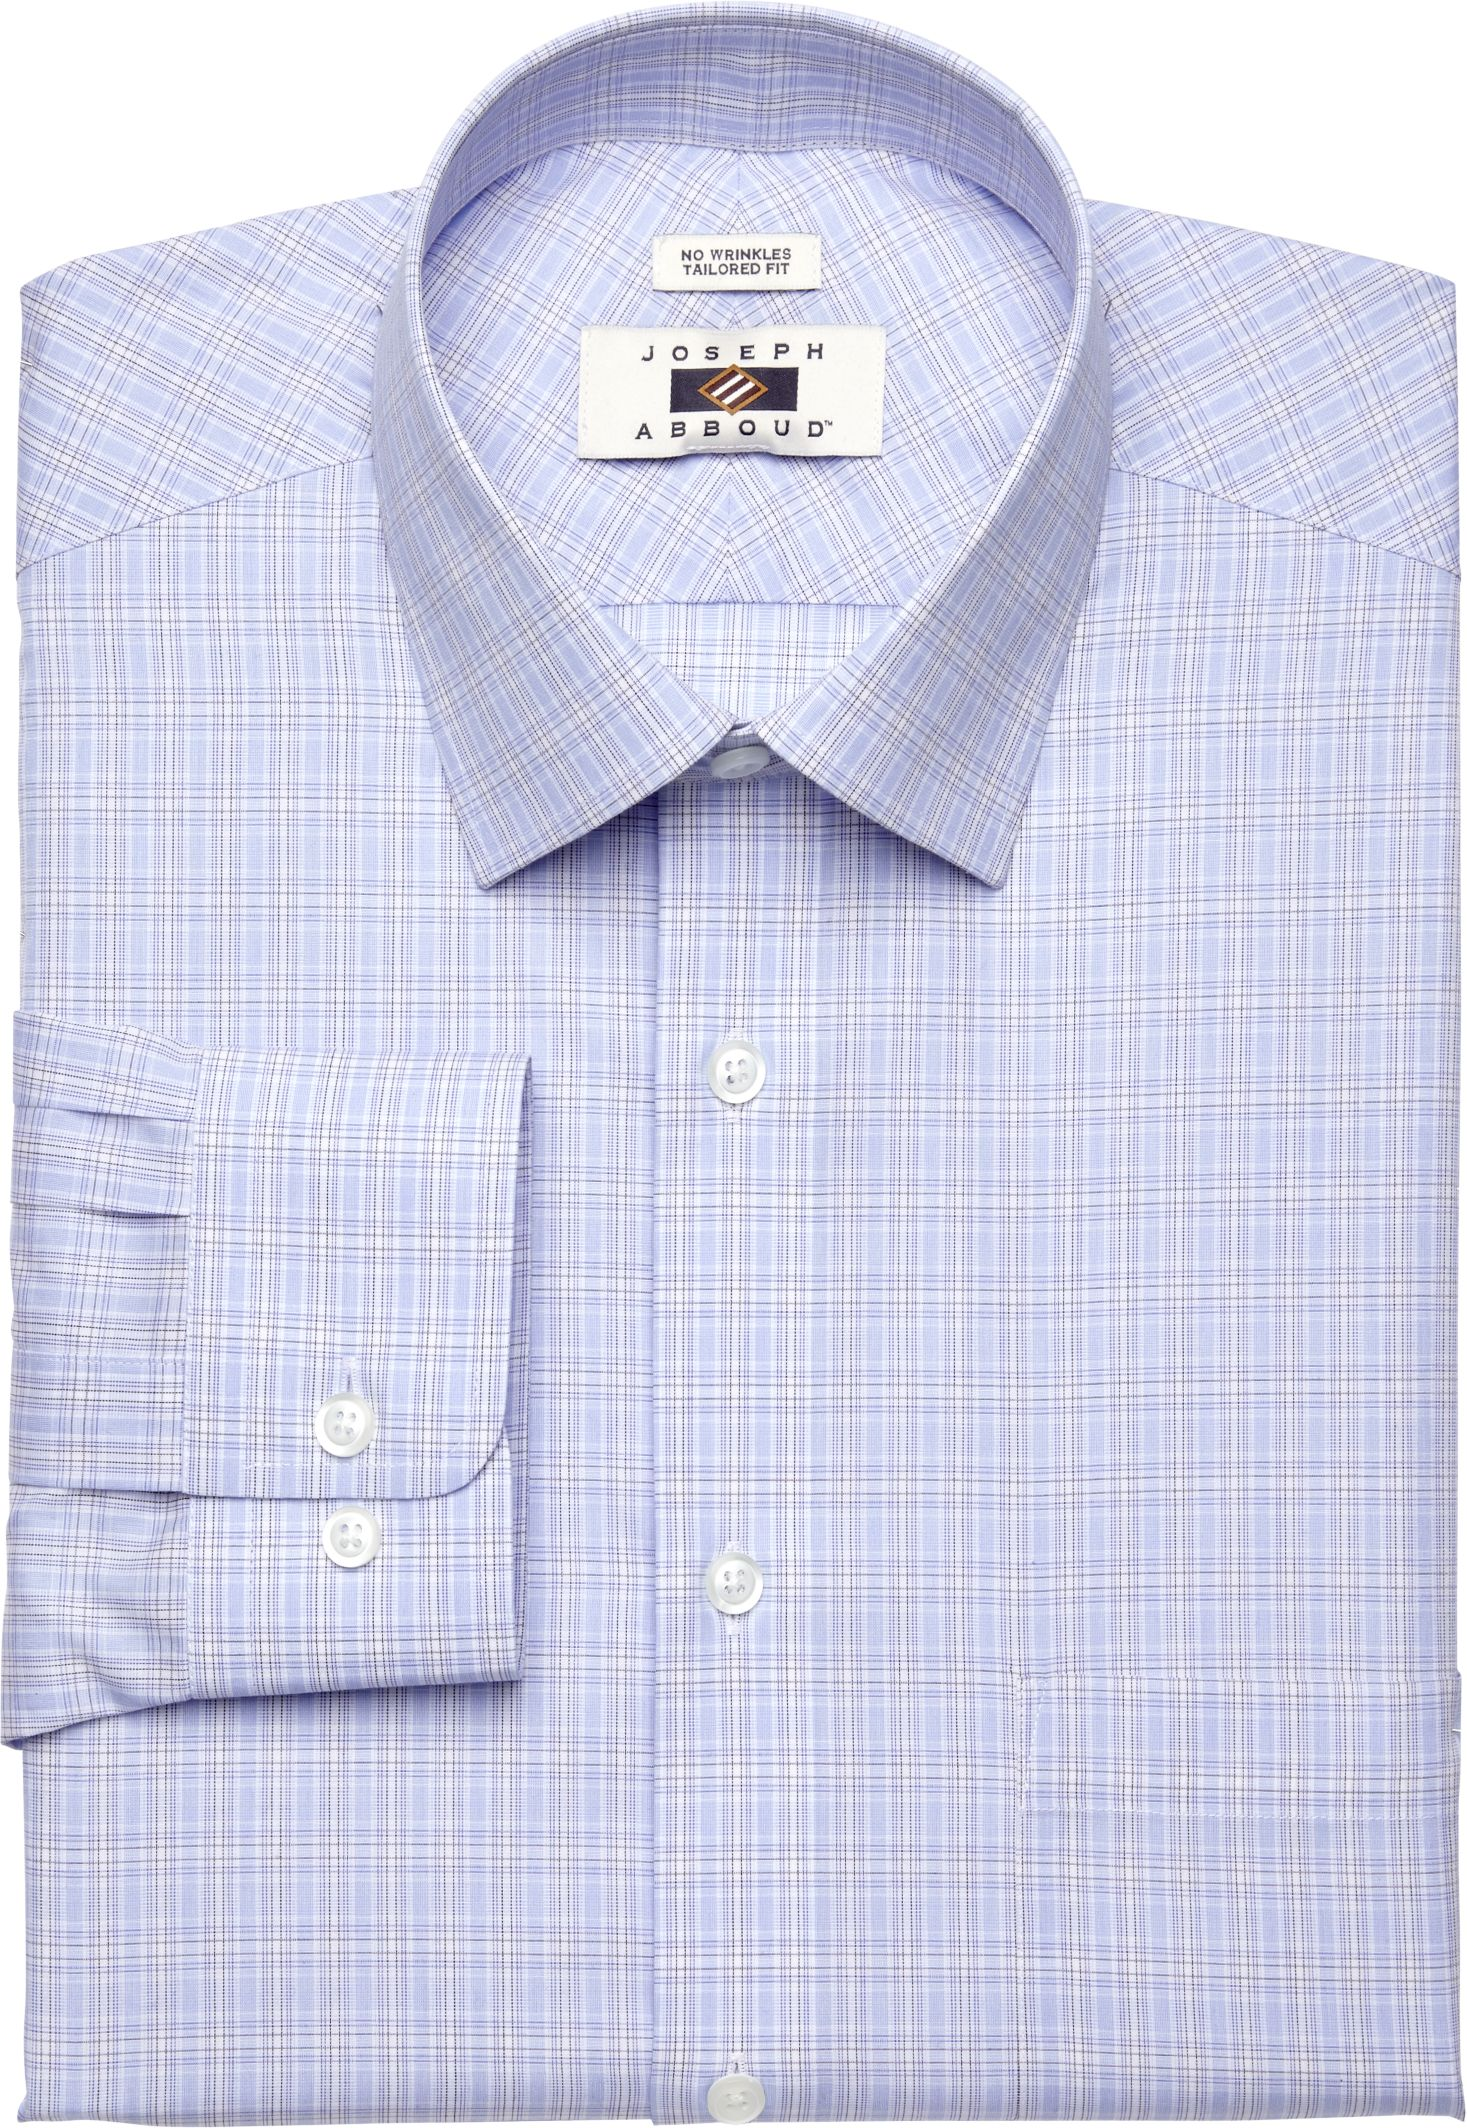 77cc35105 Joseph Abboud Traditional Fit Spread Collar Plaid Dress Shirt - Big   Tall  CLEARANCE  50C6